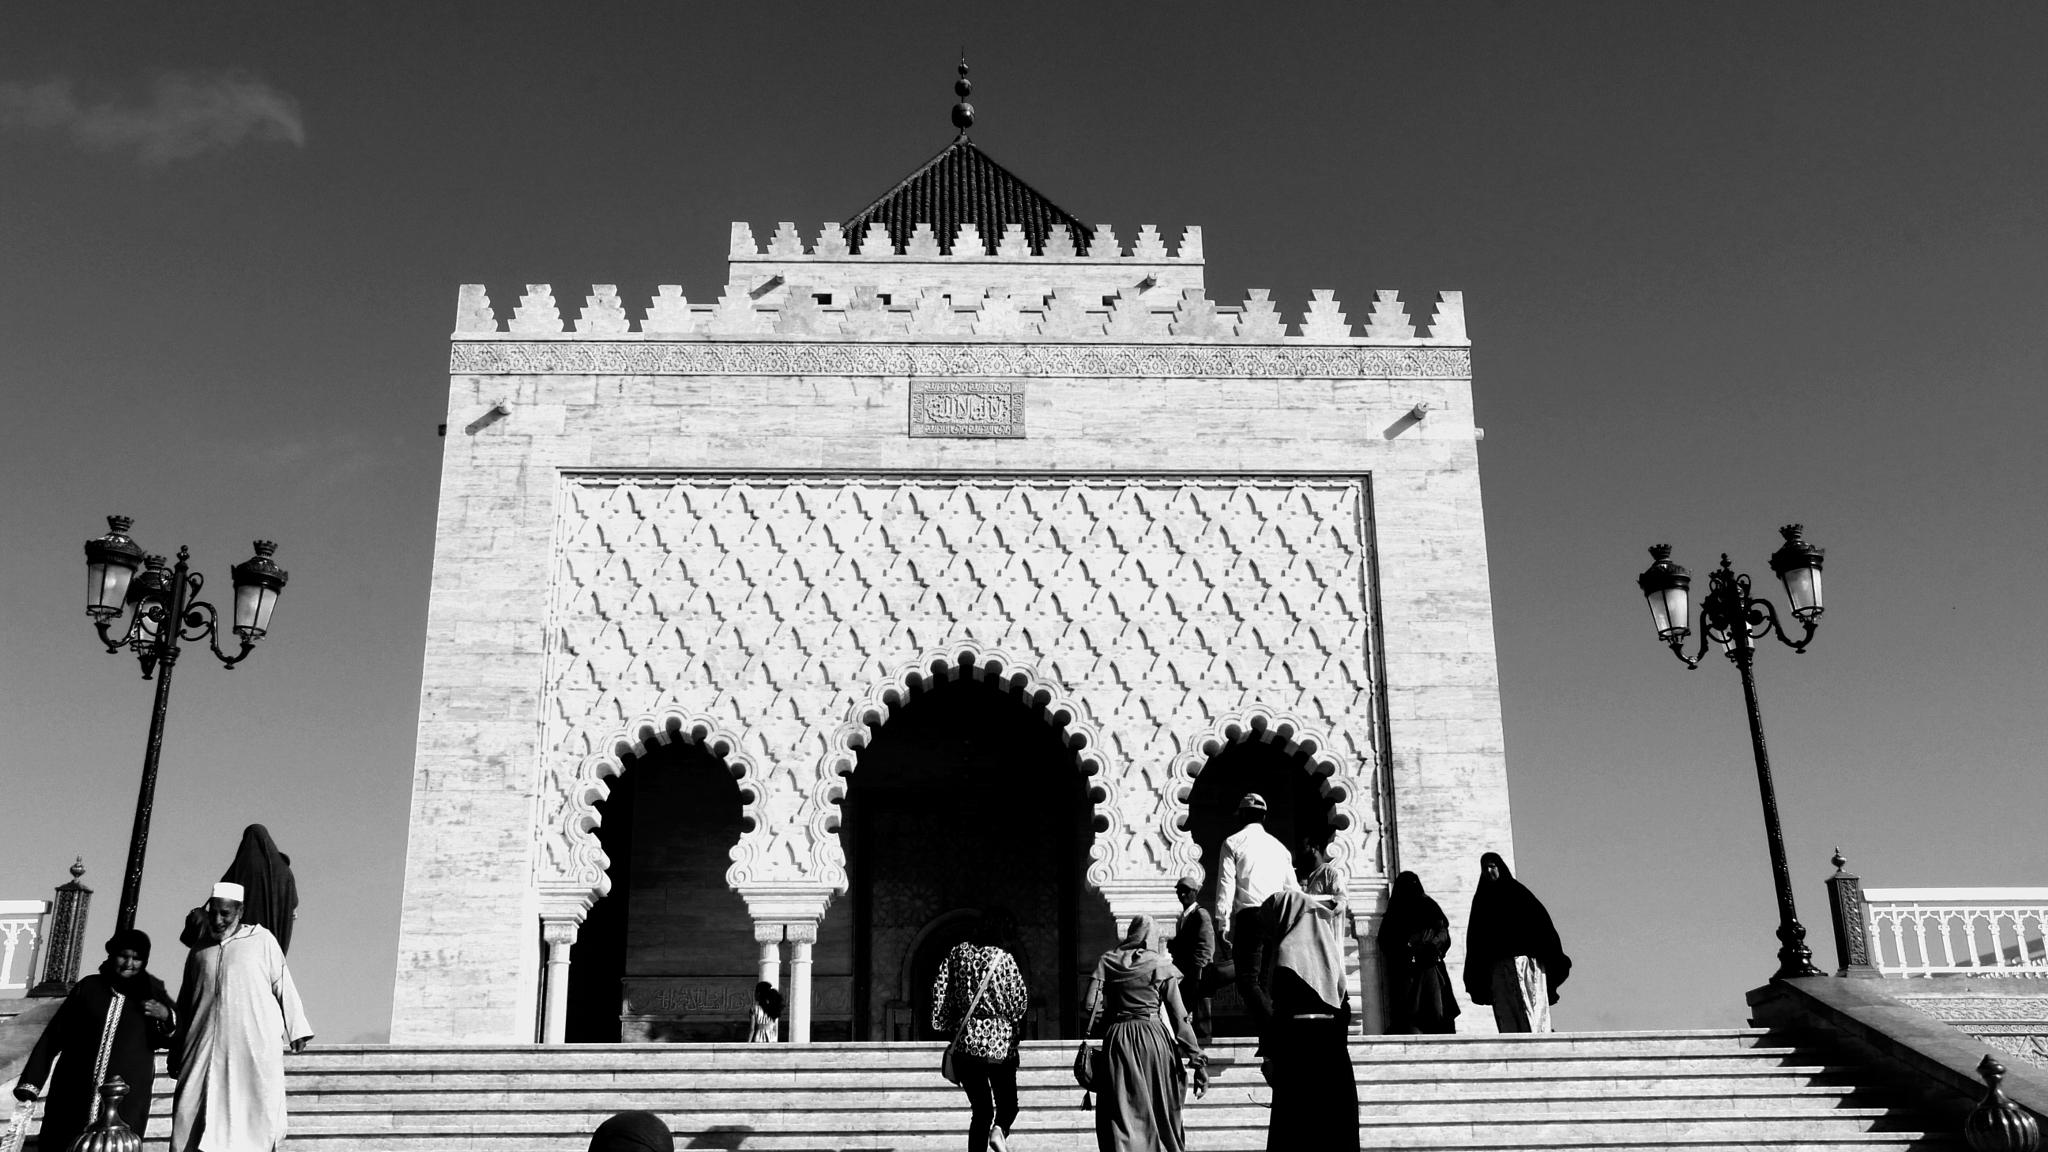 DariH Rabat capital of Morocco by Eddine Allam